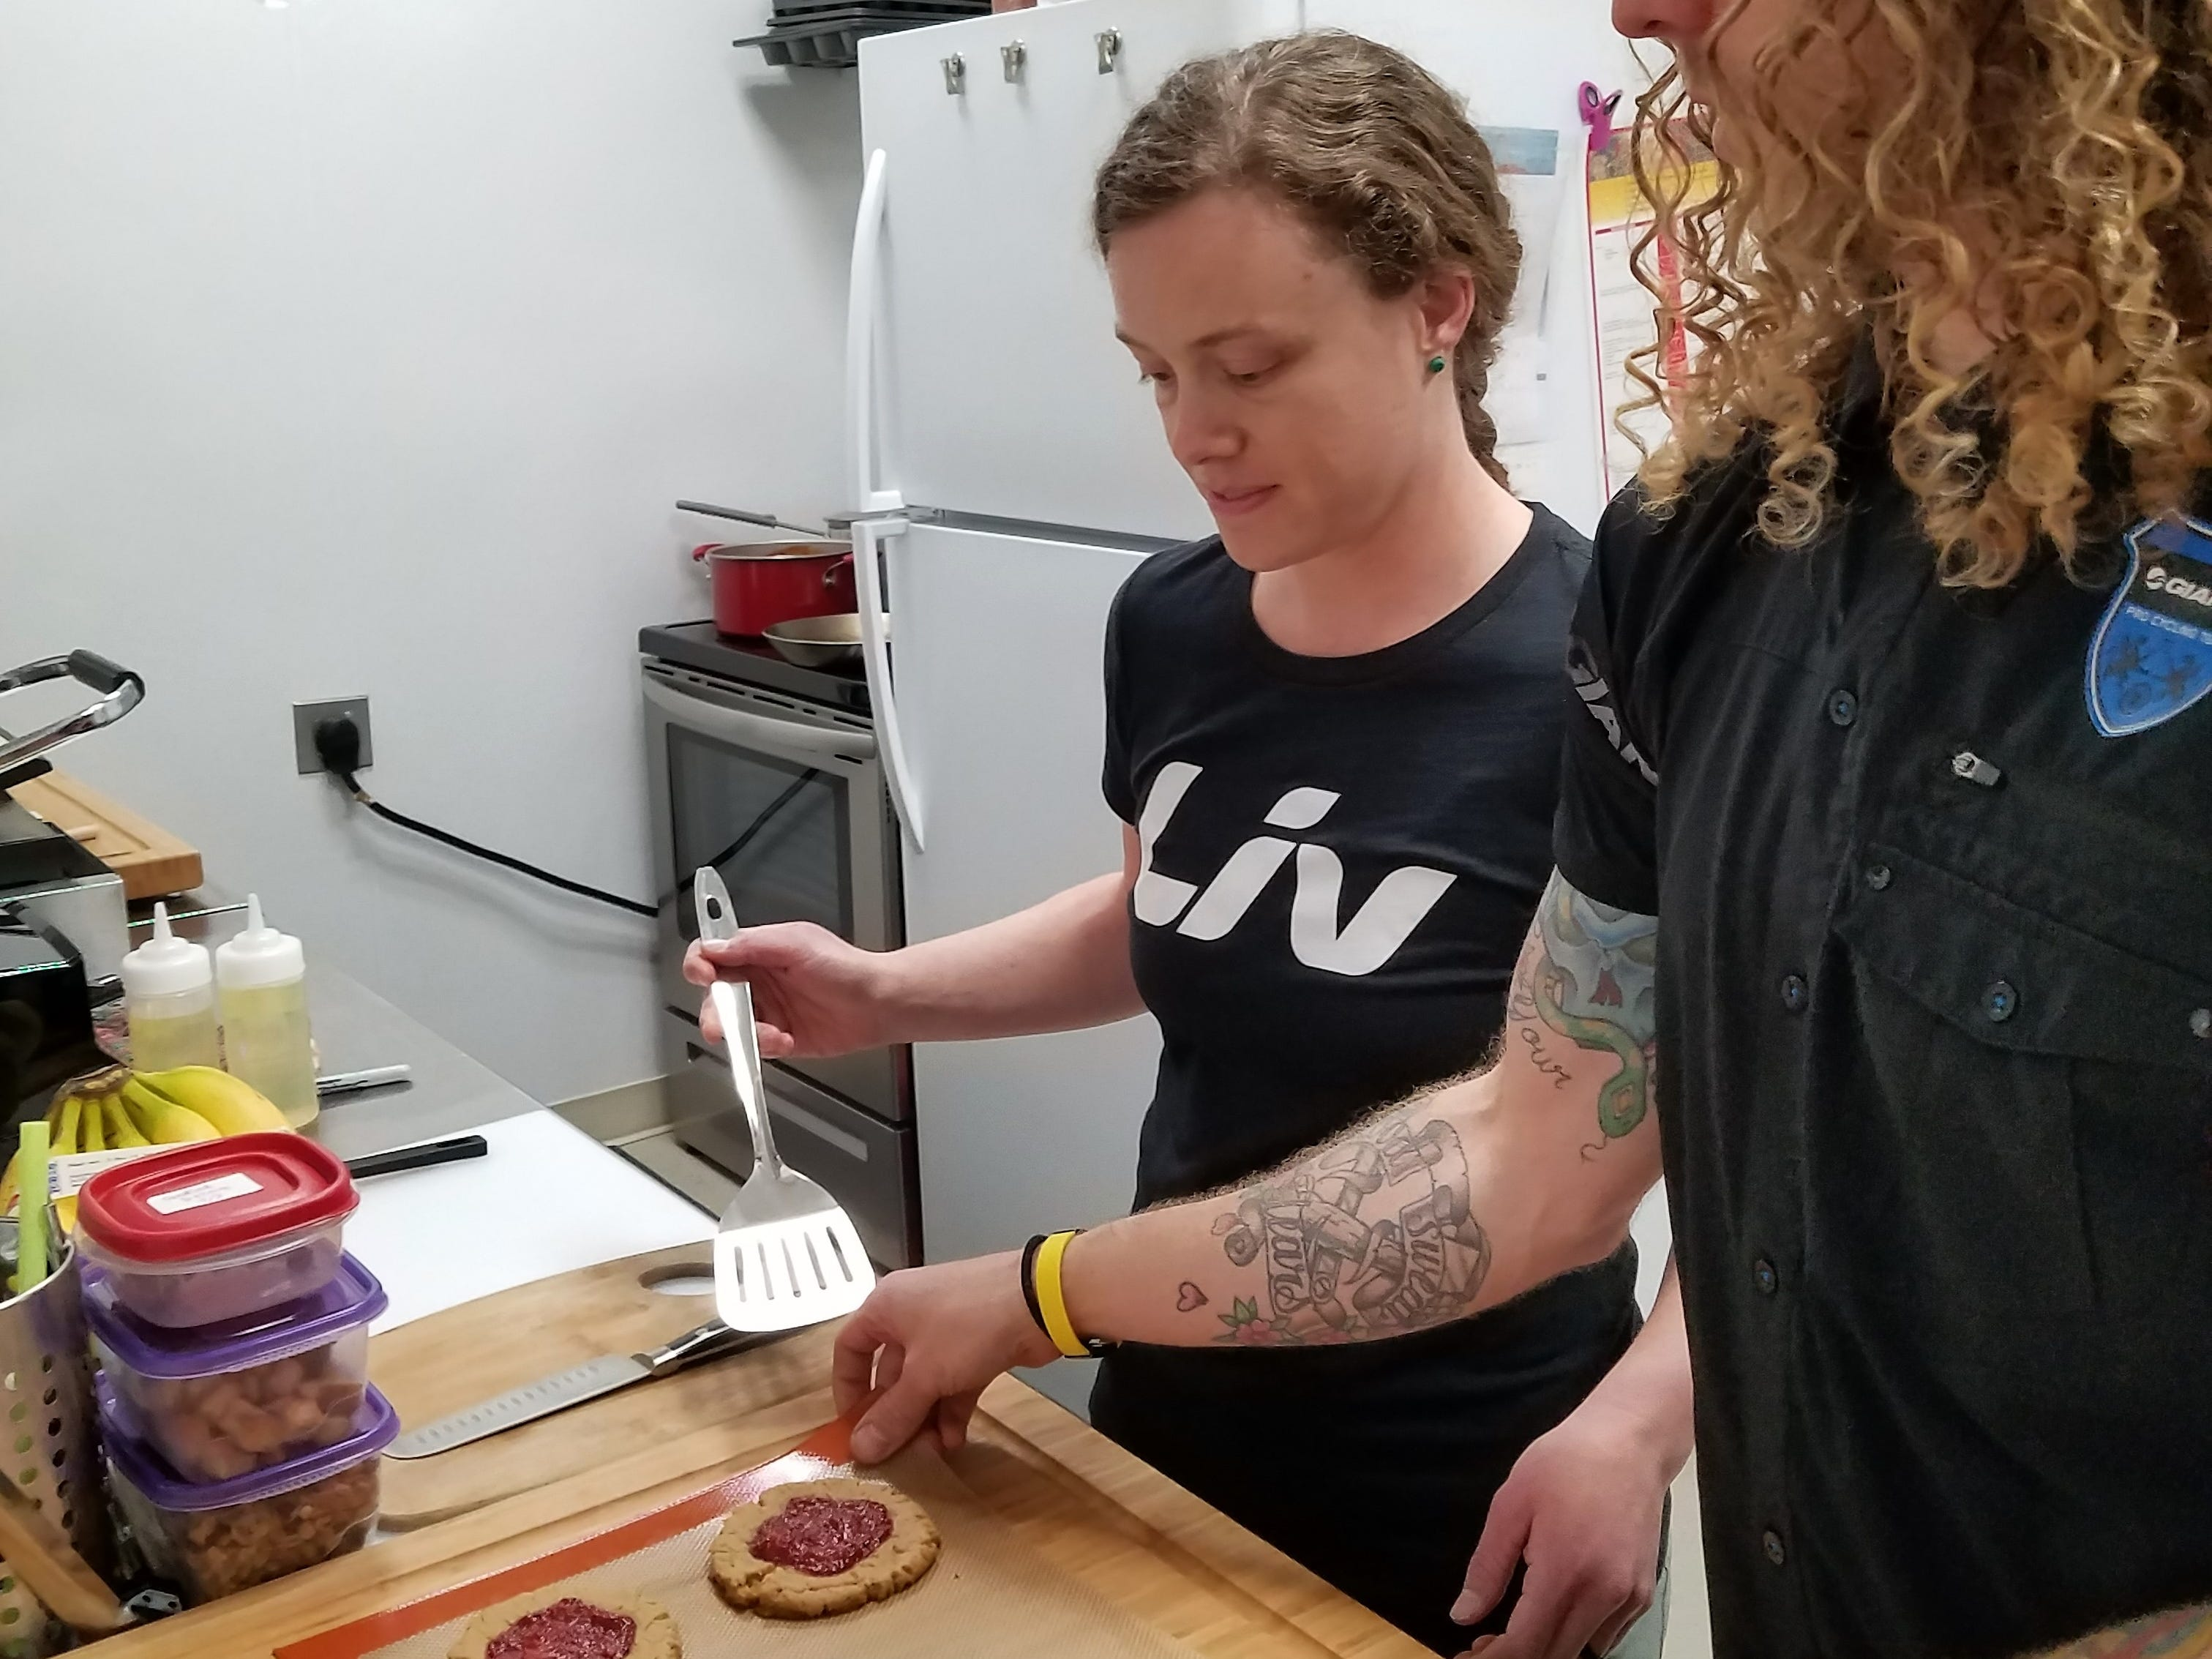 Rachael Moll does all her own vegan and vegetarian baking at La Forêt inside Cycling Solutions in Newburgh.